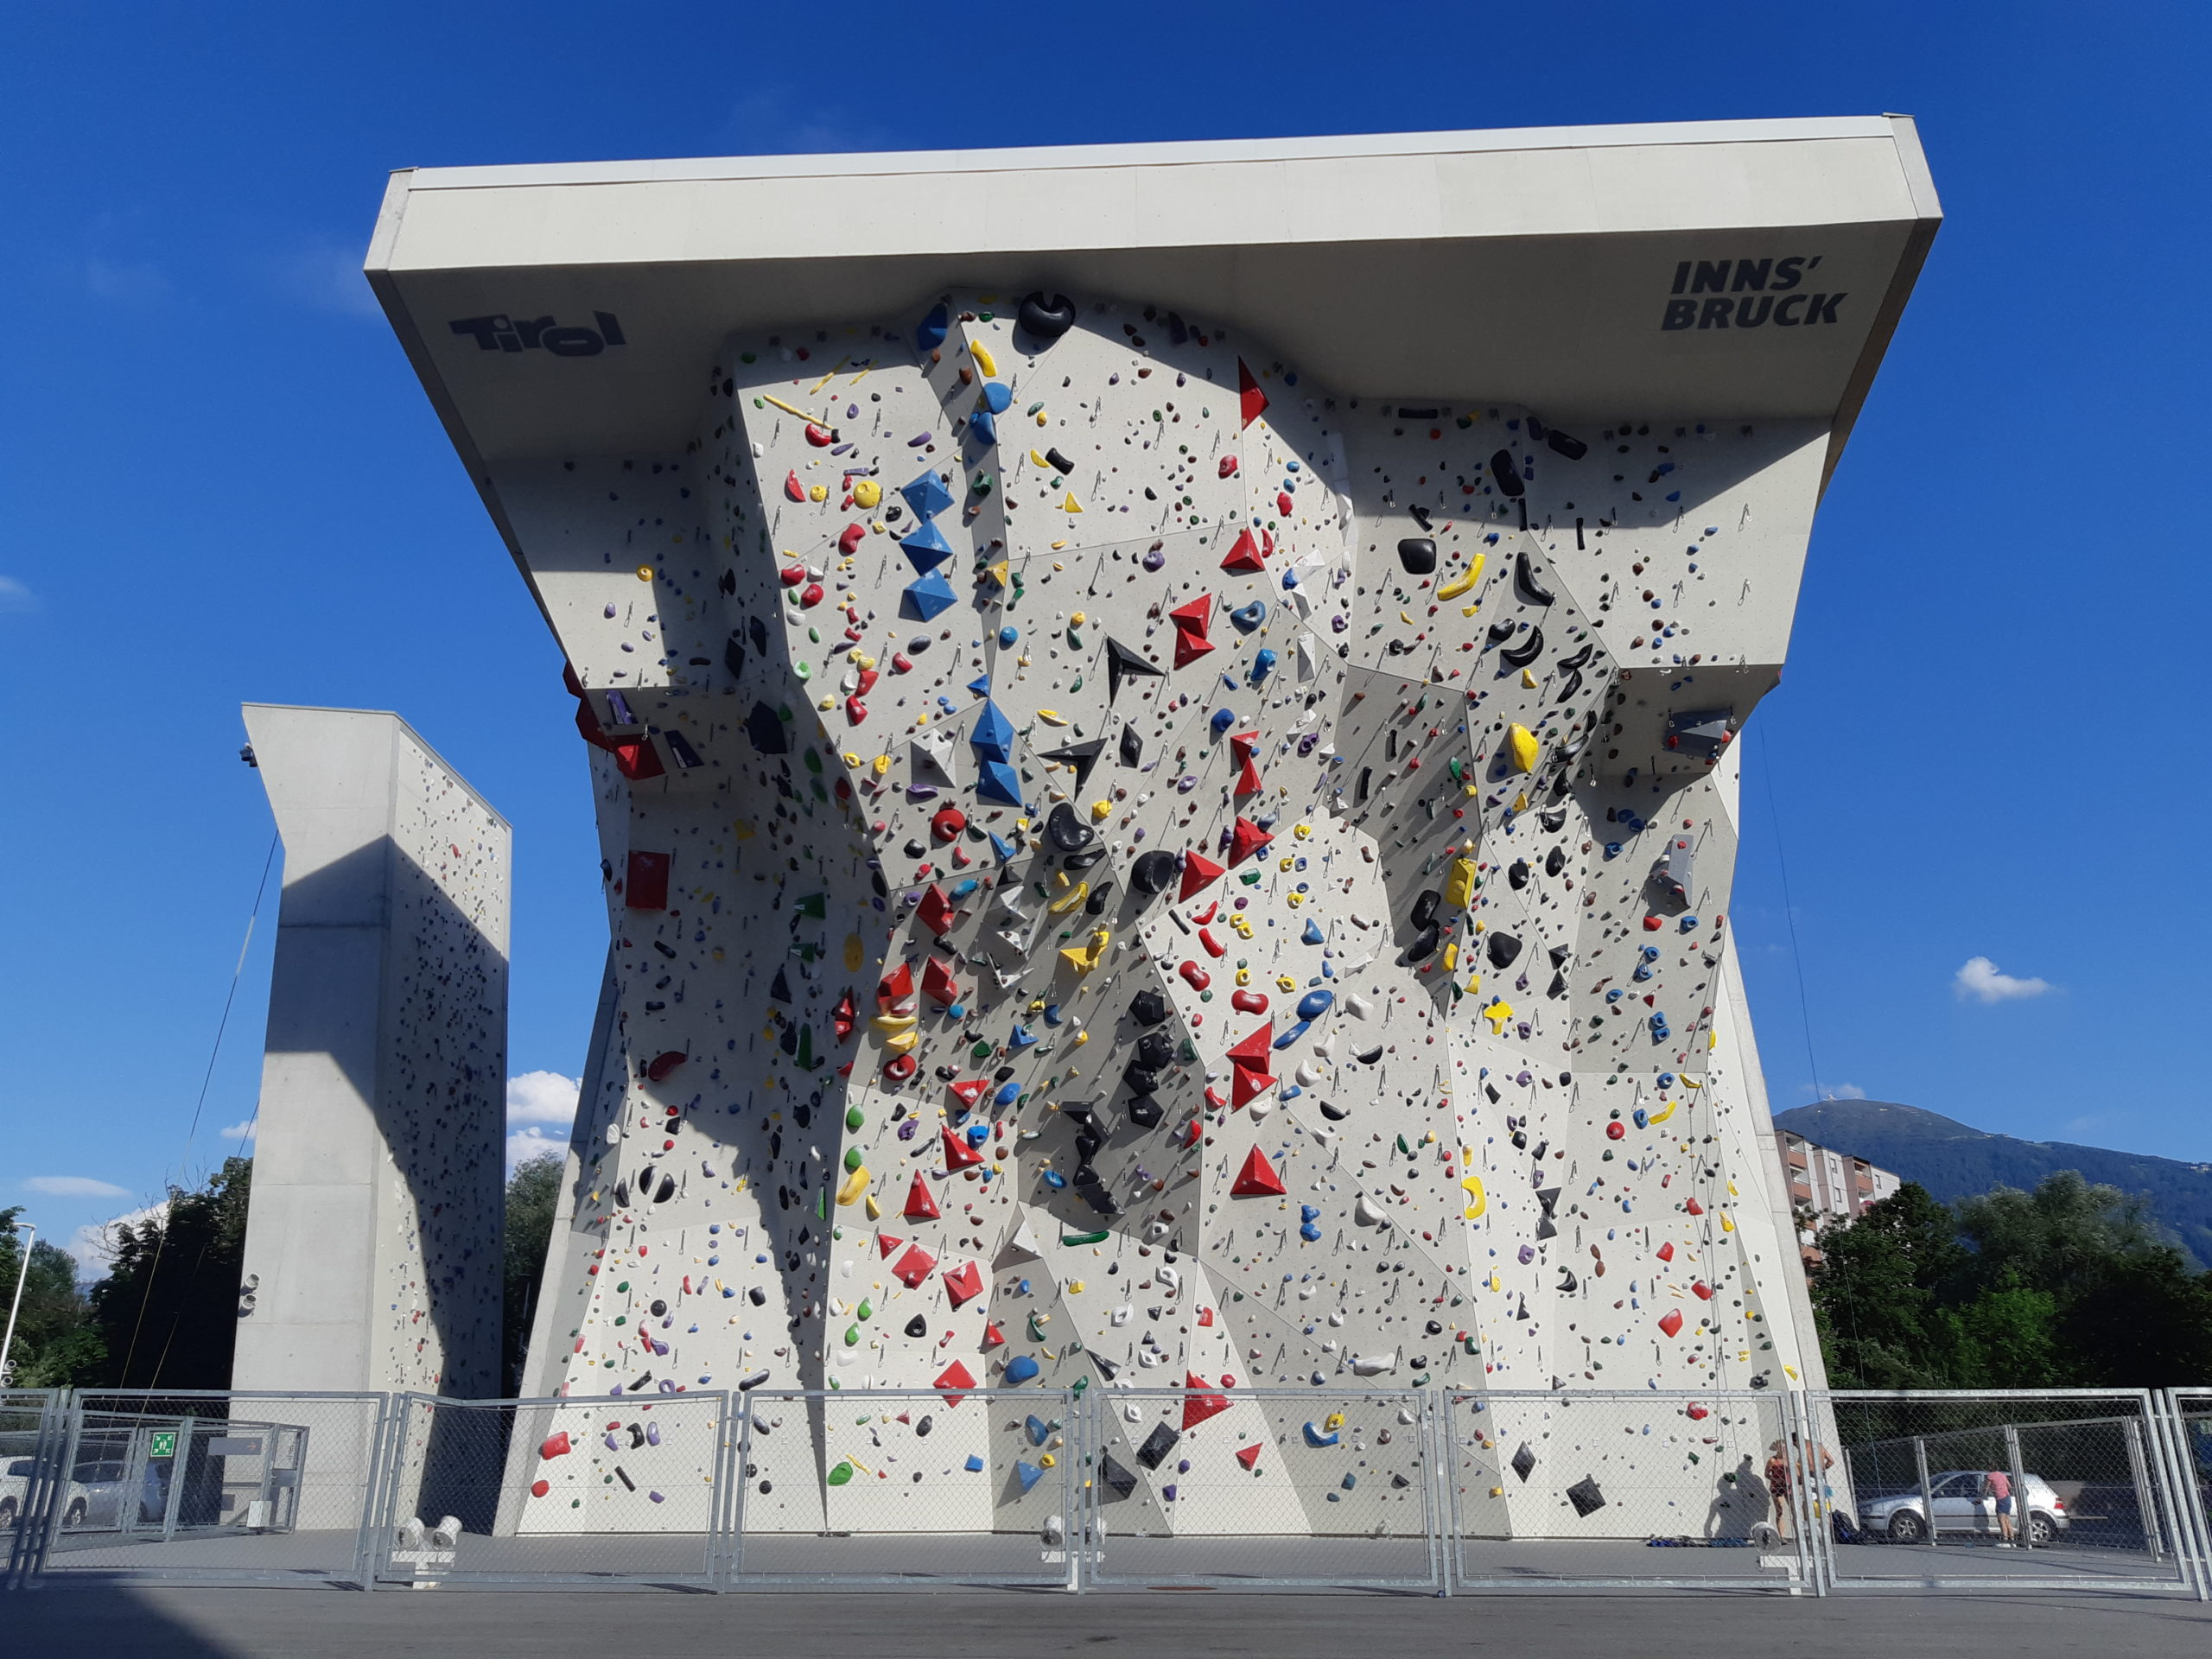 Innsbruck competition wall